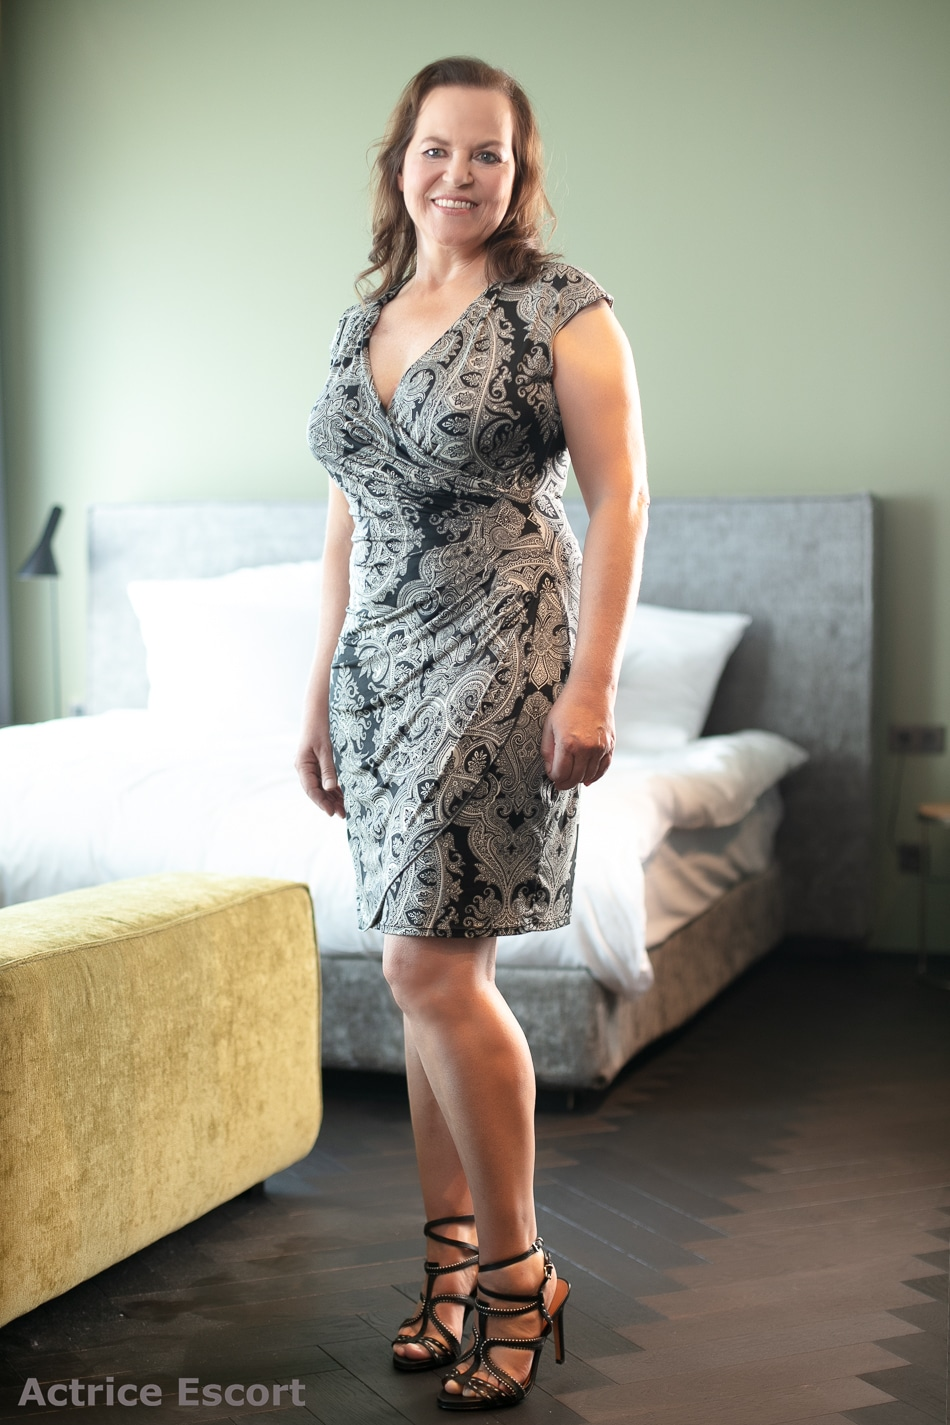 Bettina Escortservice Duesseldorf(8)